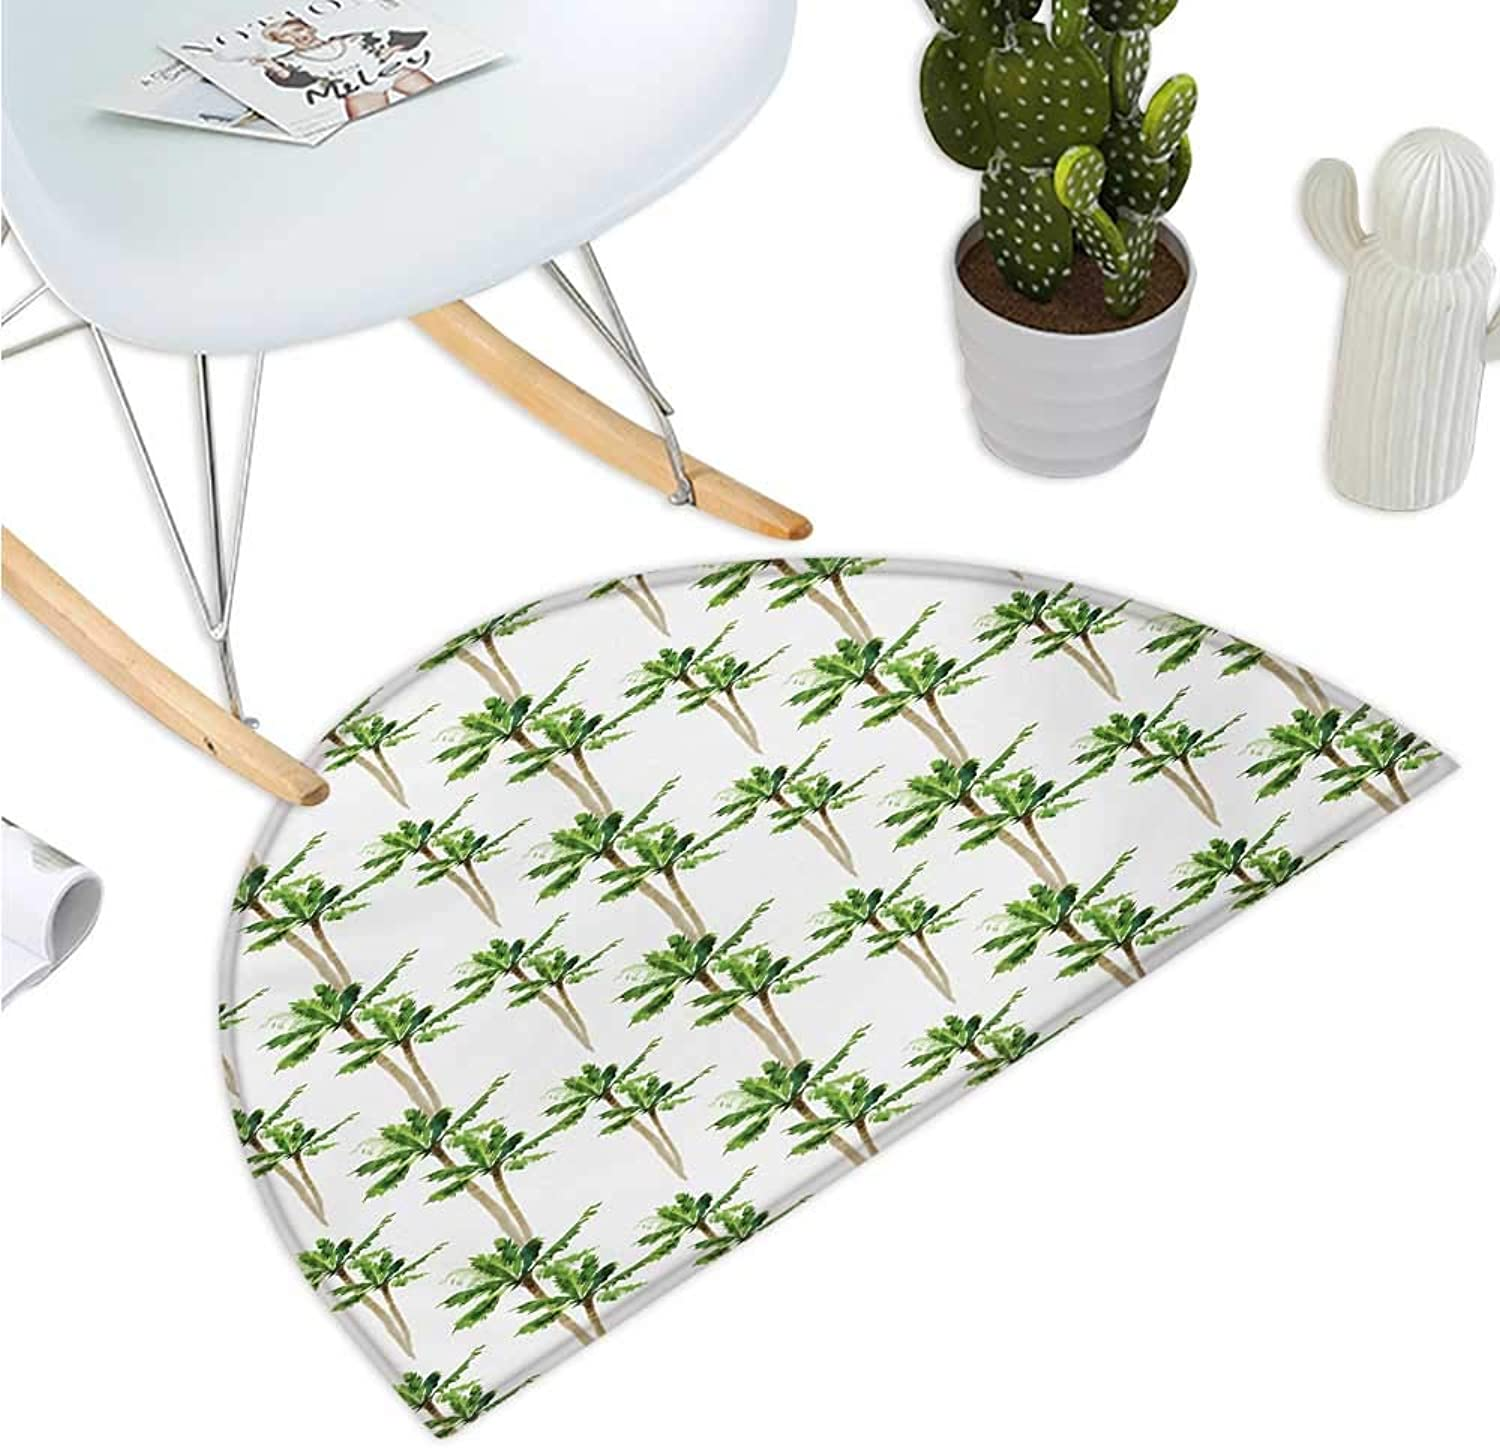 Palm Tree Semicircular Cushion Watercolor Style Forest Pattern of Coconut Trees Lush Growth Ecology Entry Door Mat H 51.1  xD 76.7  Green Cocoa and White